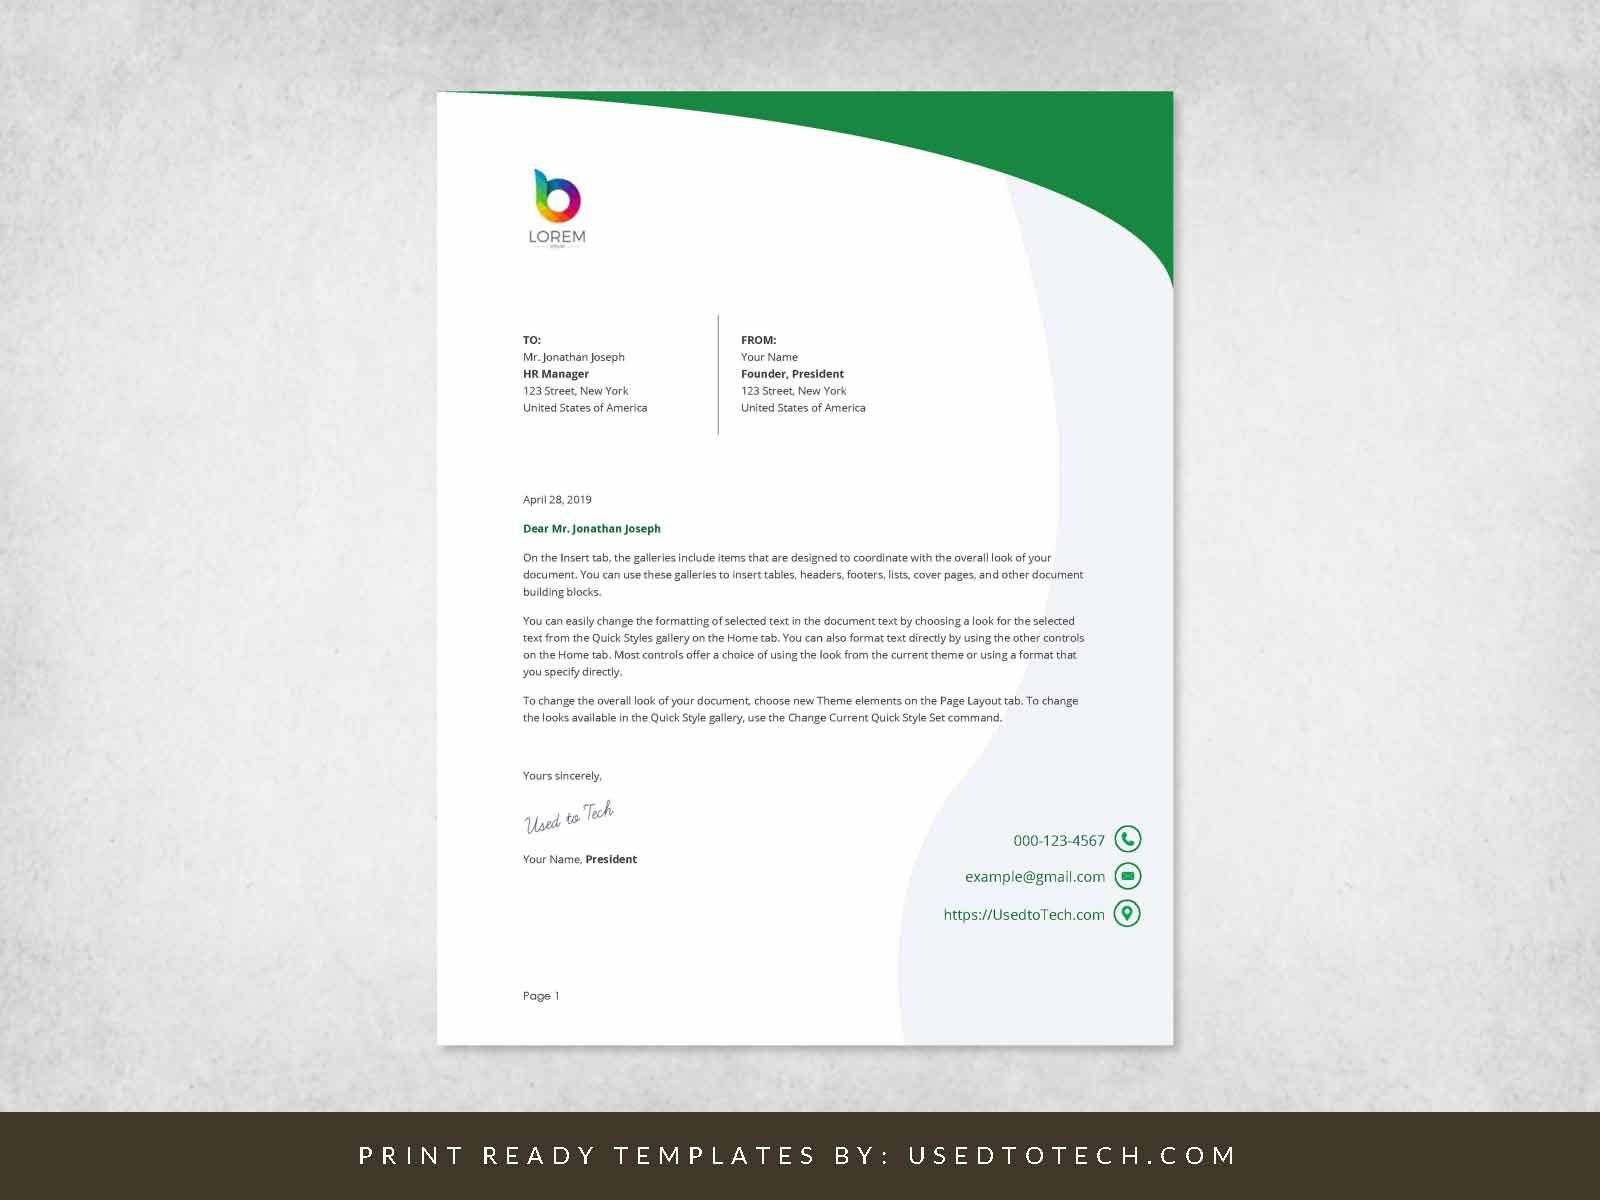 000 Staggering Letterhead Format In Word Free Download Pdf High Resolution Full